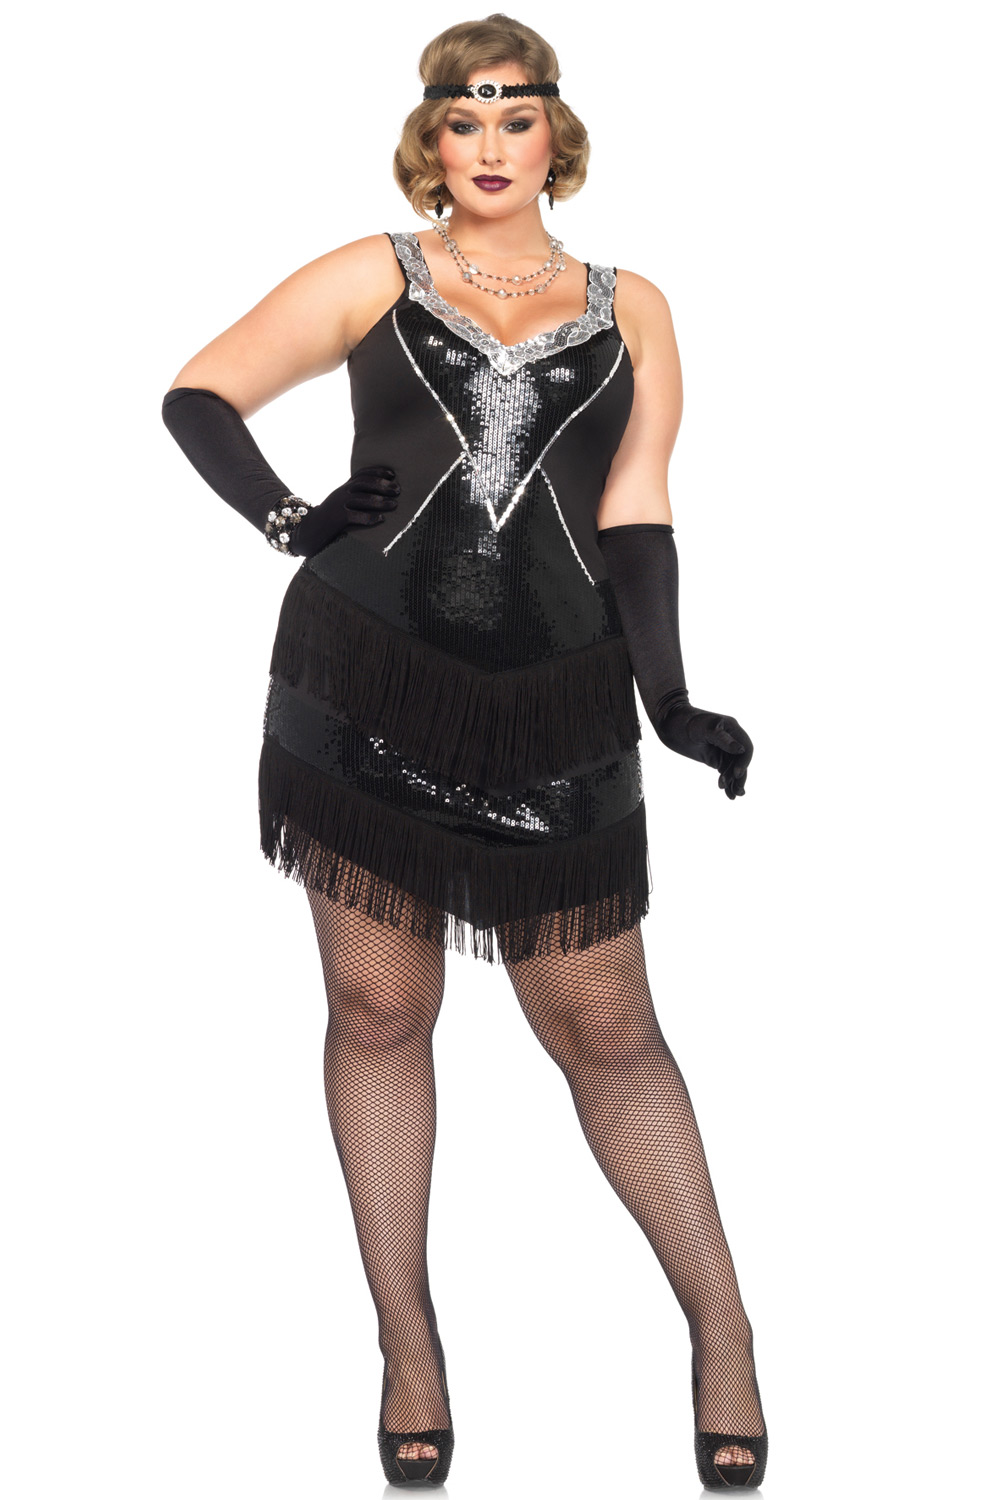 HD wallpapers plus size costume rental online